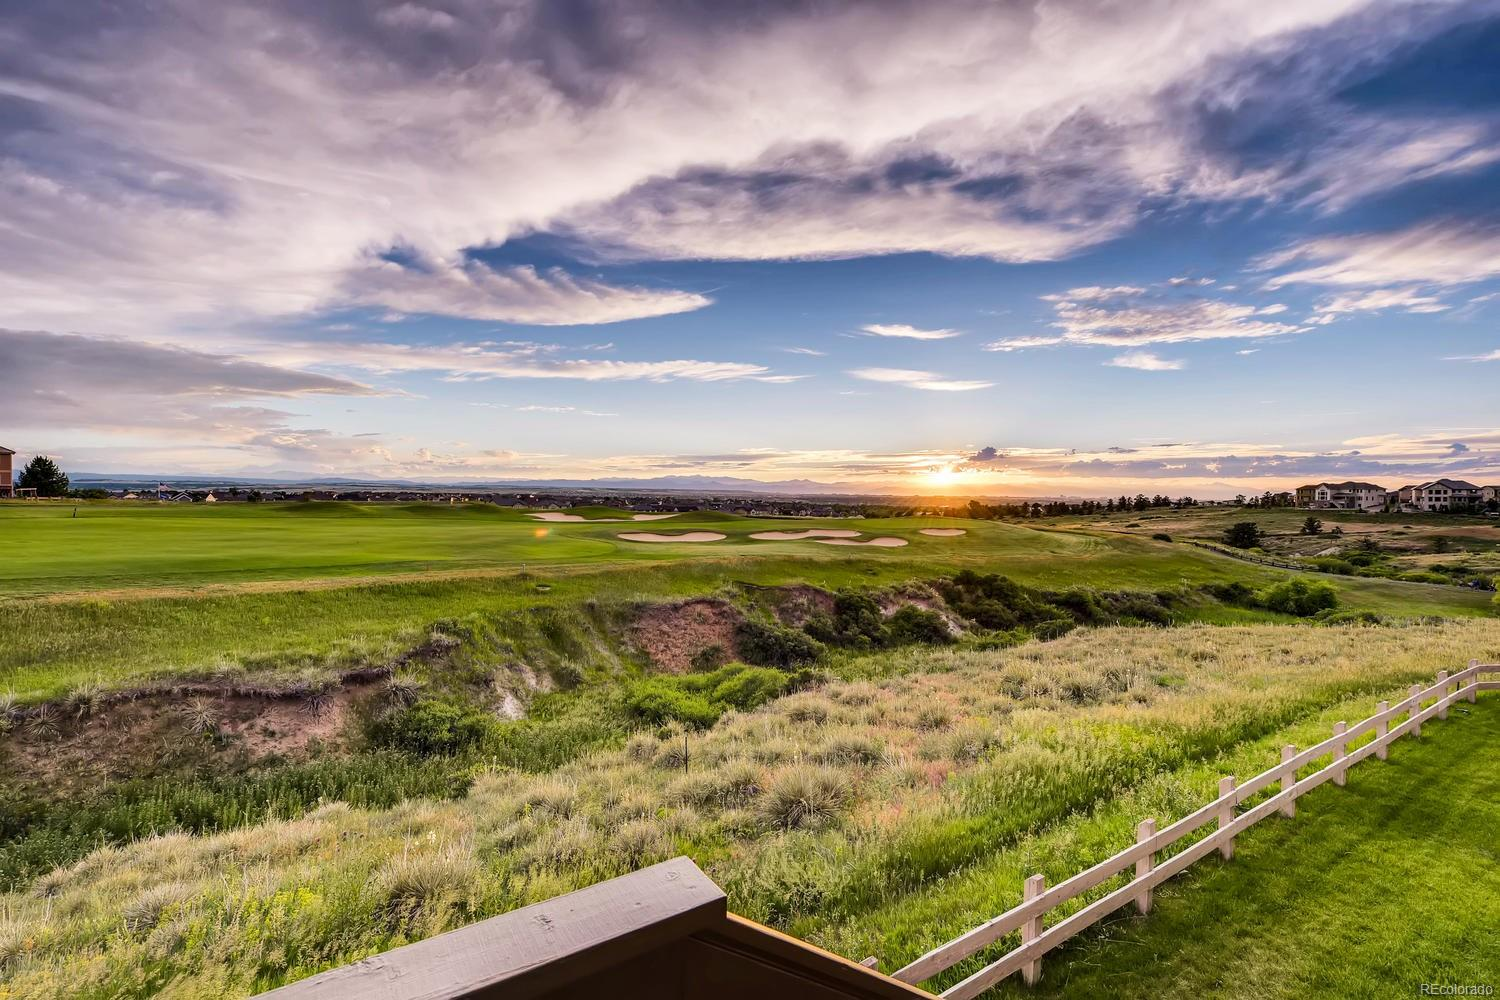 15th Hole of Black Bear Golf Course, City and Expansive Mountain Views are Visible from Both Levels.